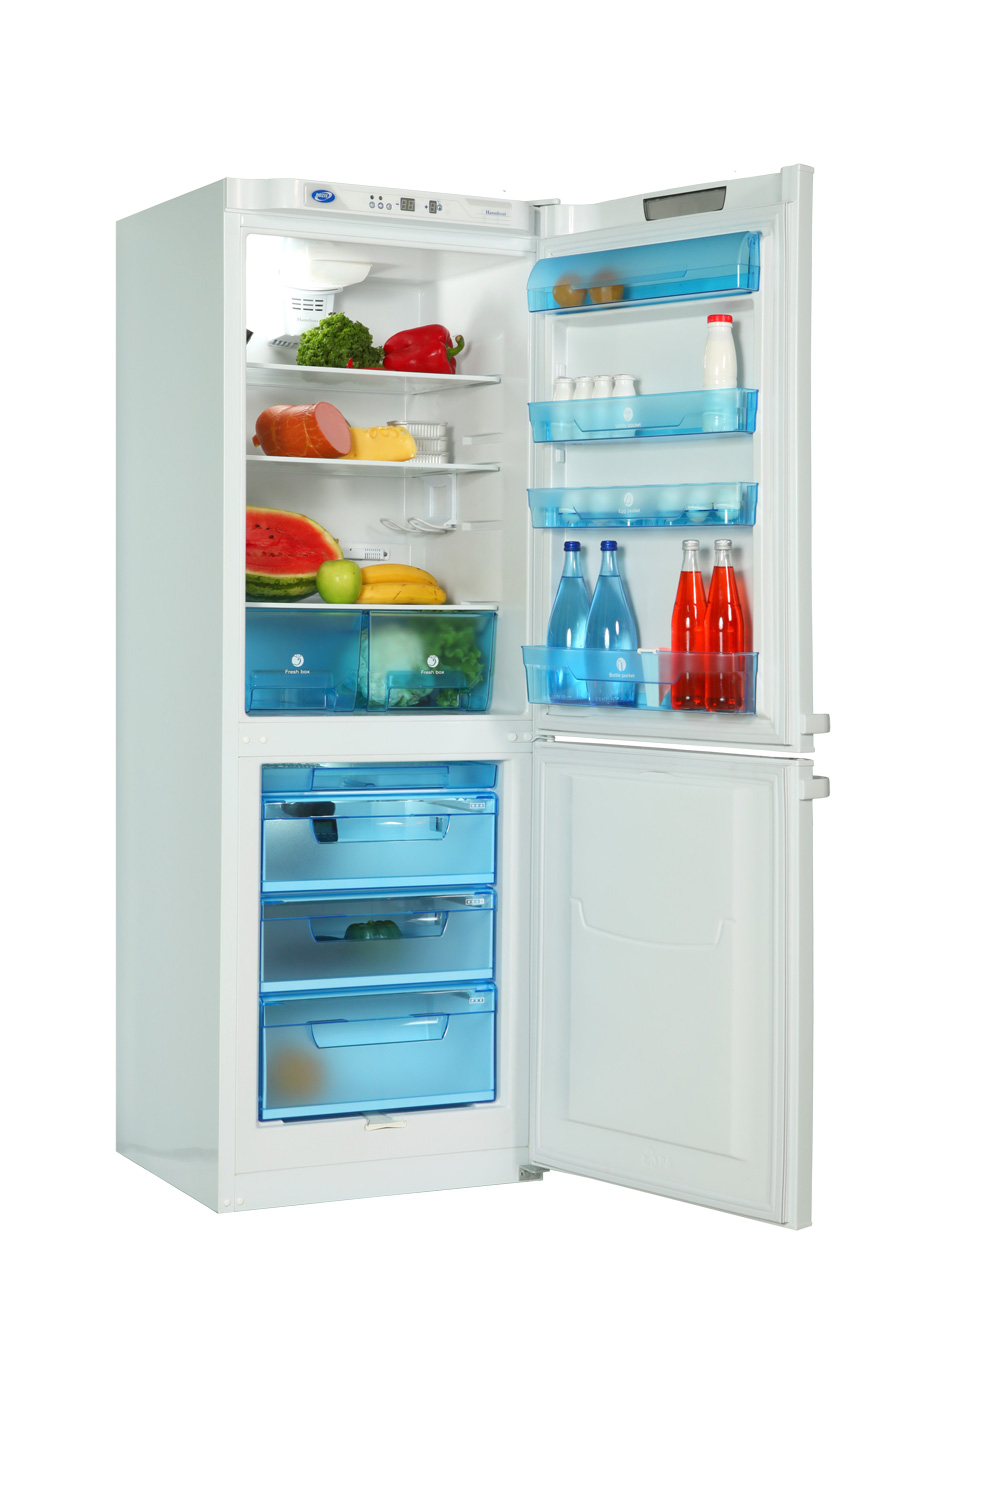 Specifications, models and reviews about Pozis refrigerators 64